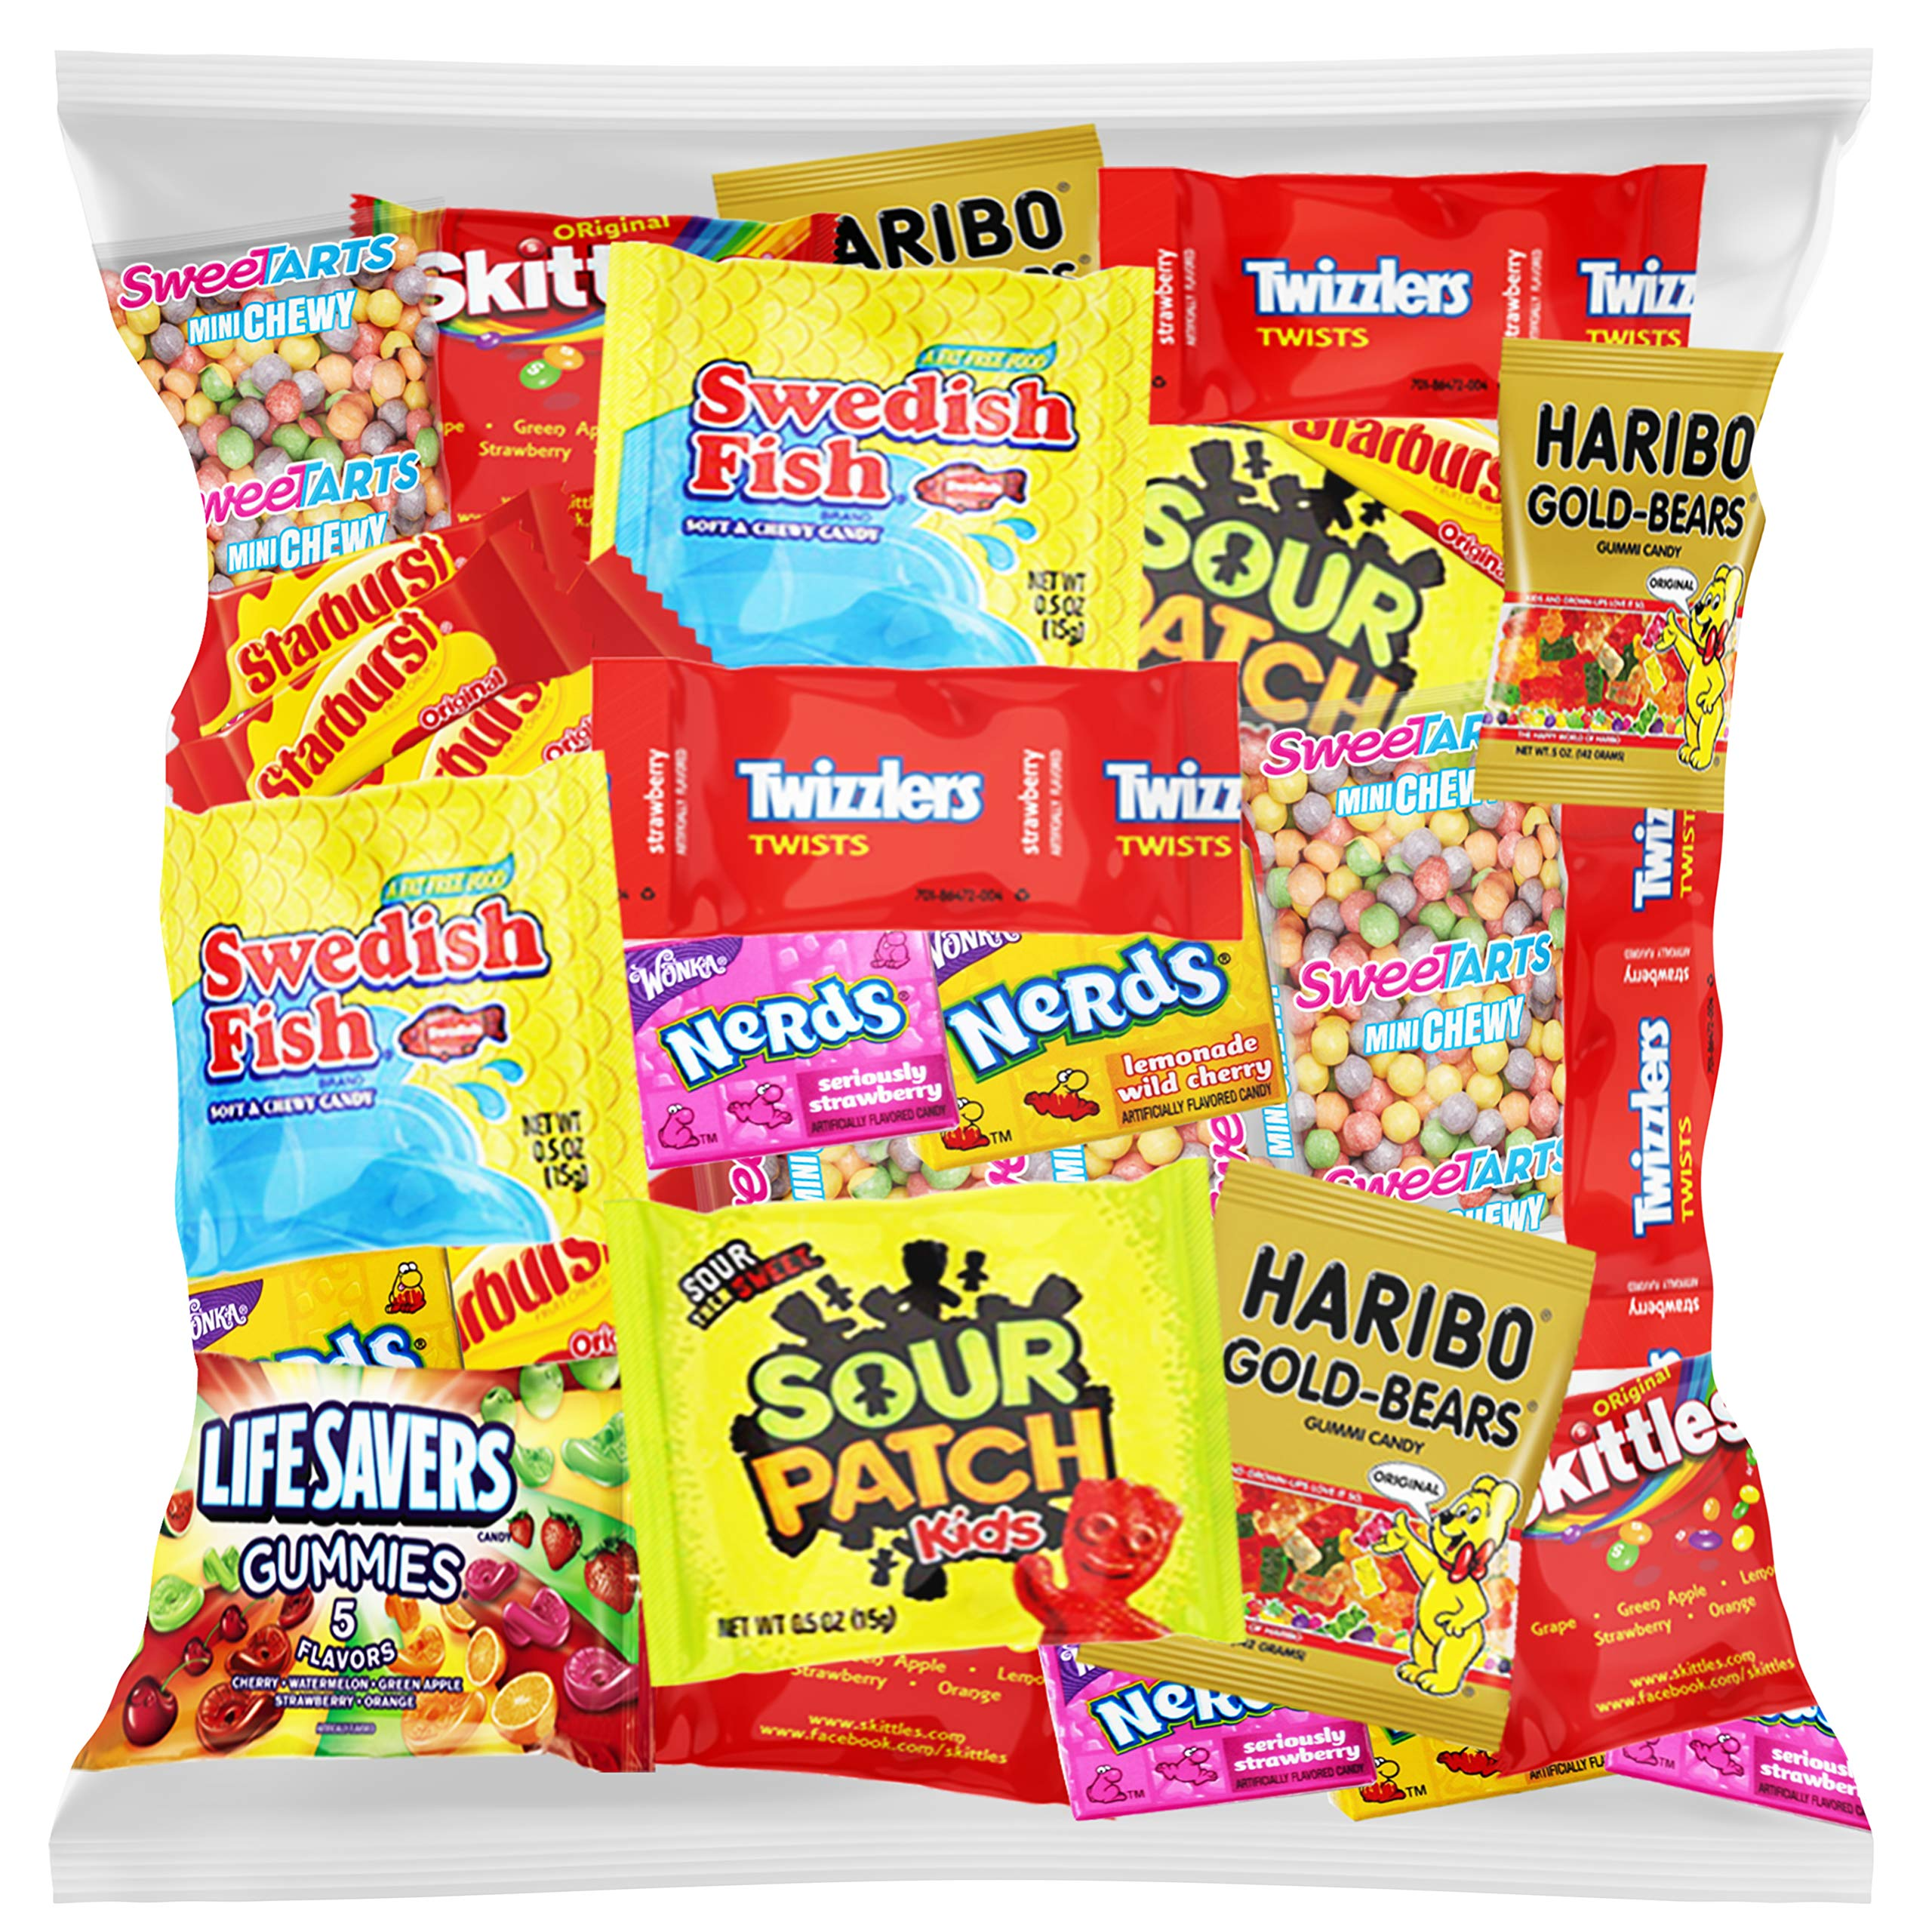 Candy Party Mix Bulk Bag of Skittles Swedish Fish Nerds Haribo Gummy Sour Patch Twizzlers Starburst Mike and Ike and more! by Variety Fun Net wt (48 oz) by Custom Varietea